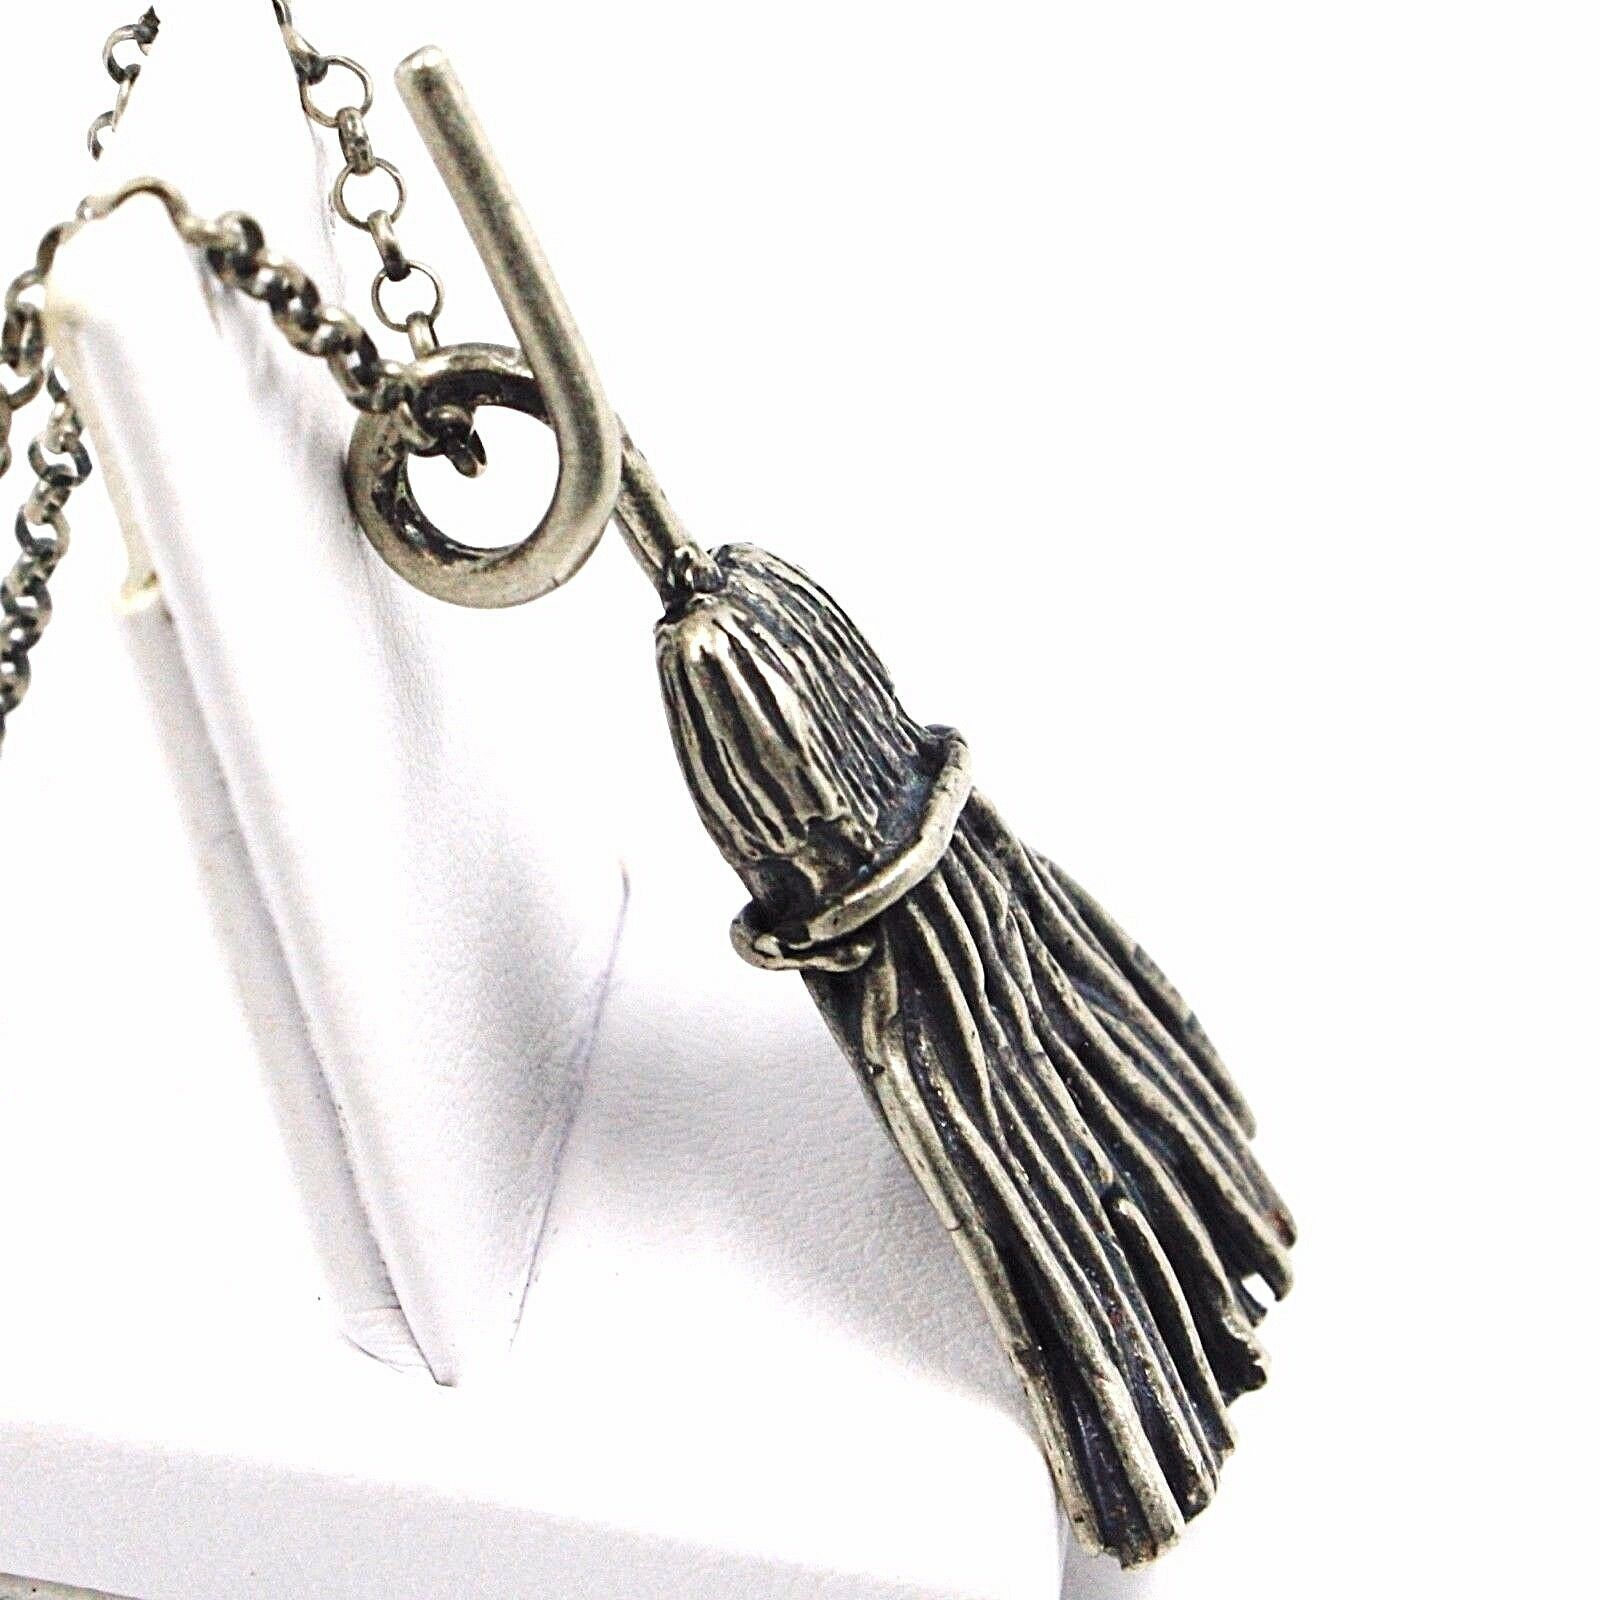 Necklace and Pendant, Silver 925, Burnished Satin, Broom, Witch, Rolo Chain